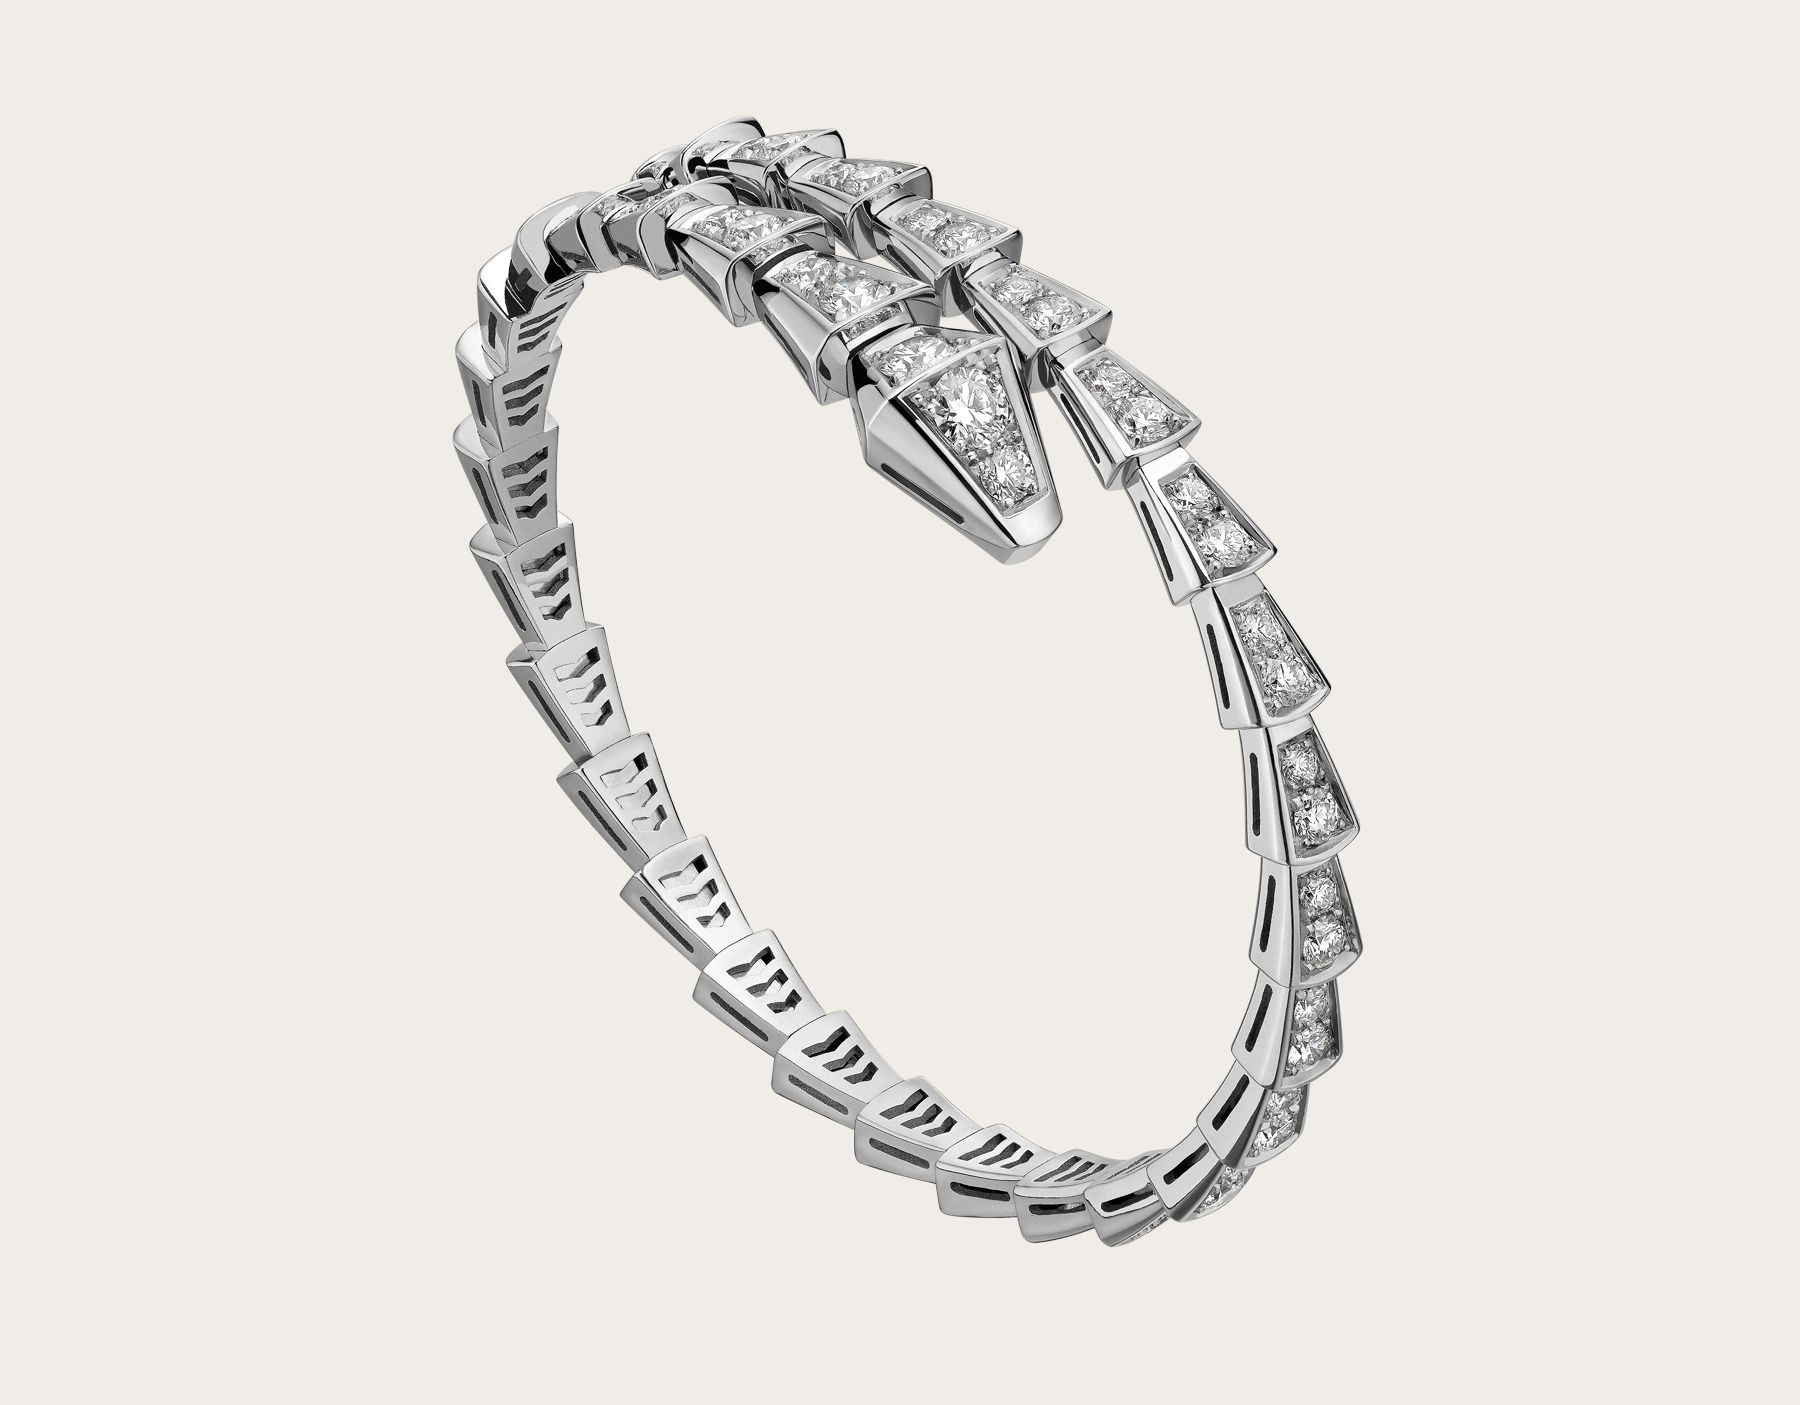 serpenti slim bracelet in 18k white gold with pave diamonds